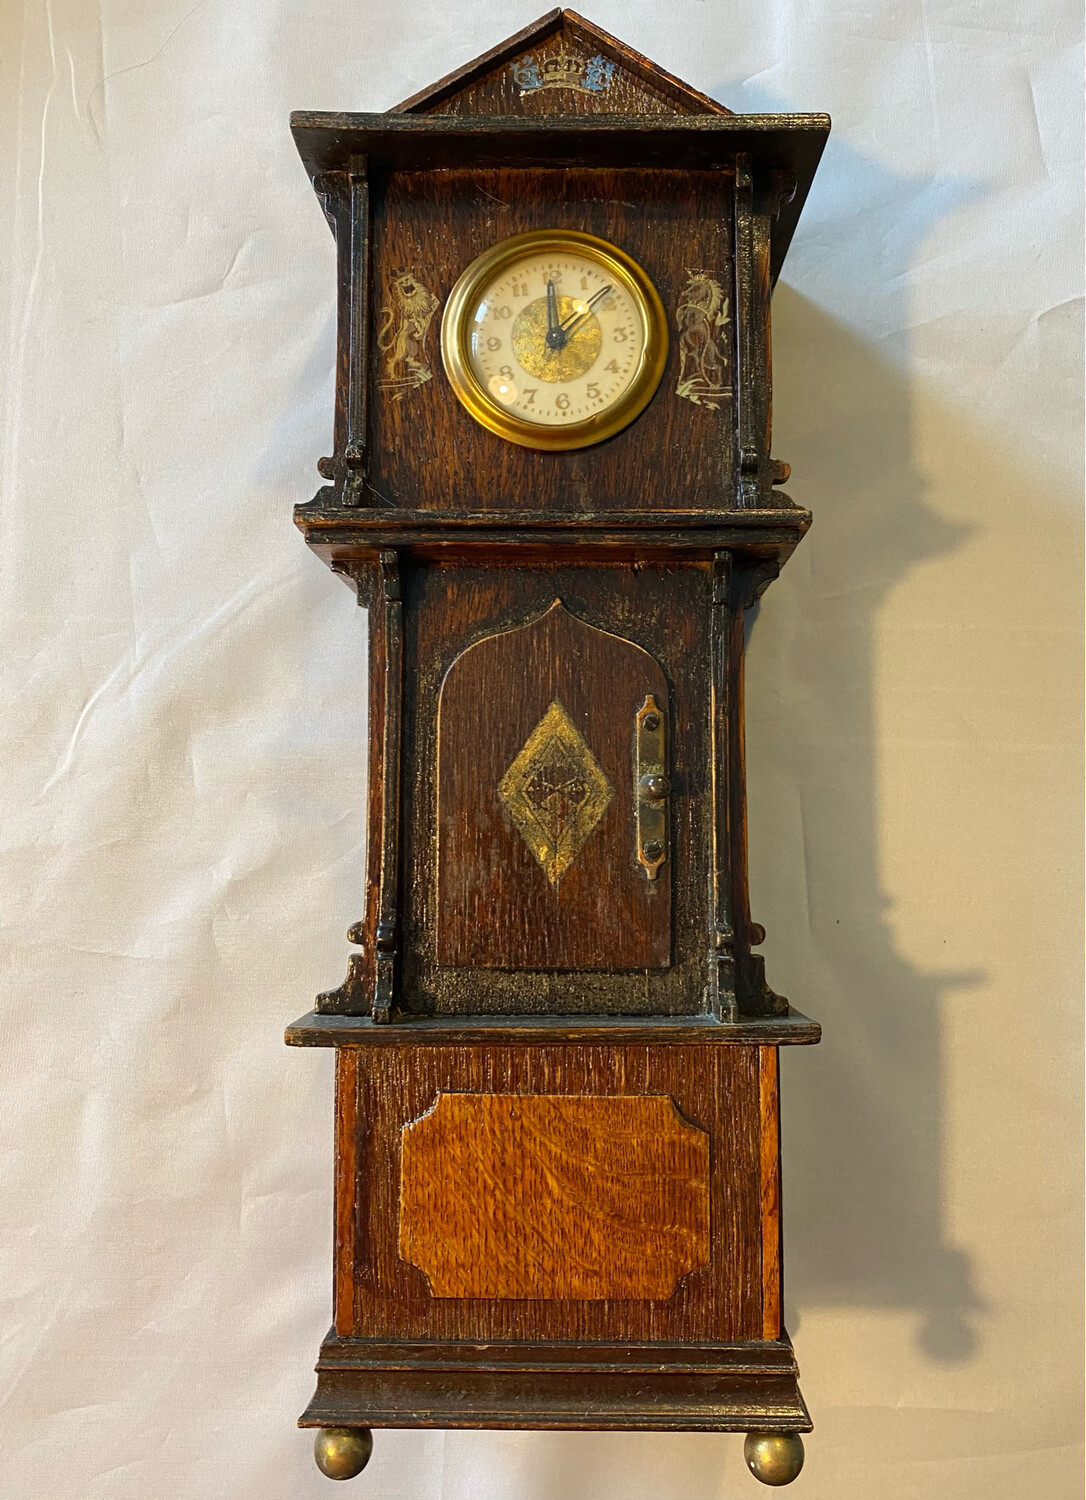 Mantle clock in Grandfather style with Royal Emblems - late Victorian